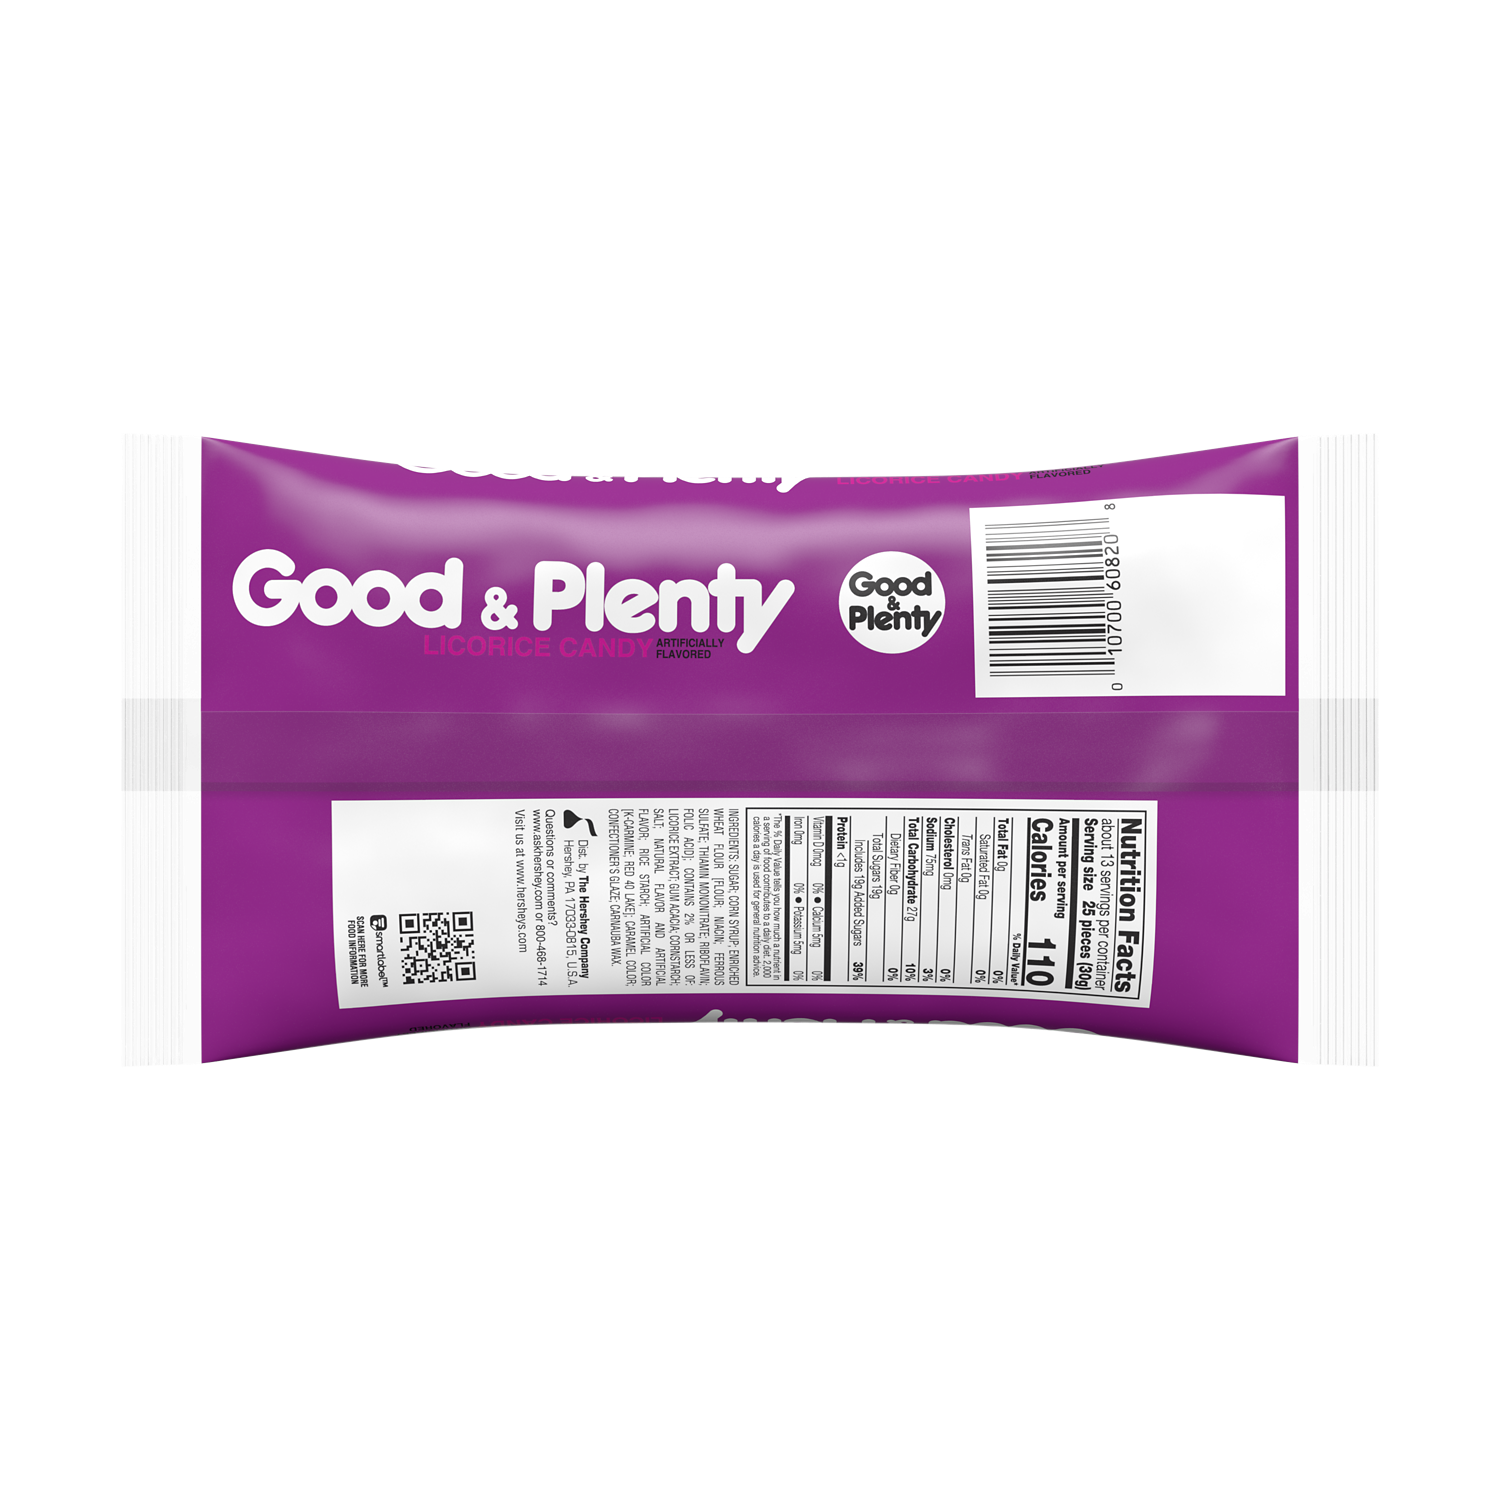 GOOD & PLENTY Licorice Candy, 14 oz bag - Back of Package